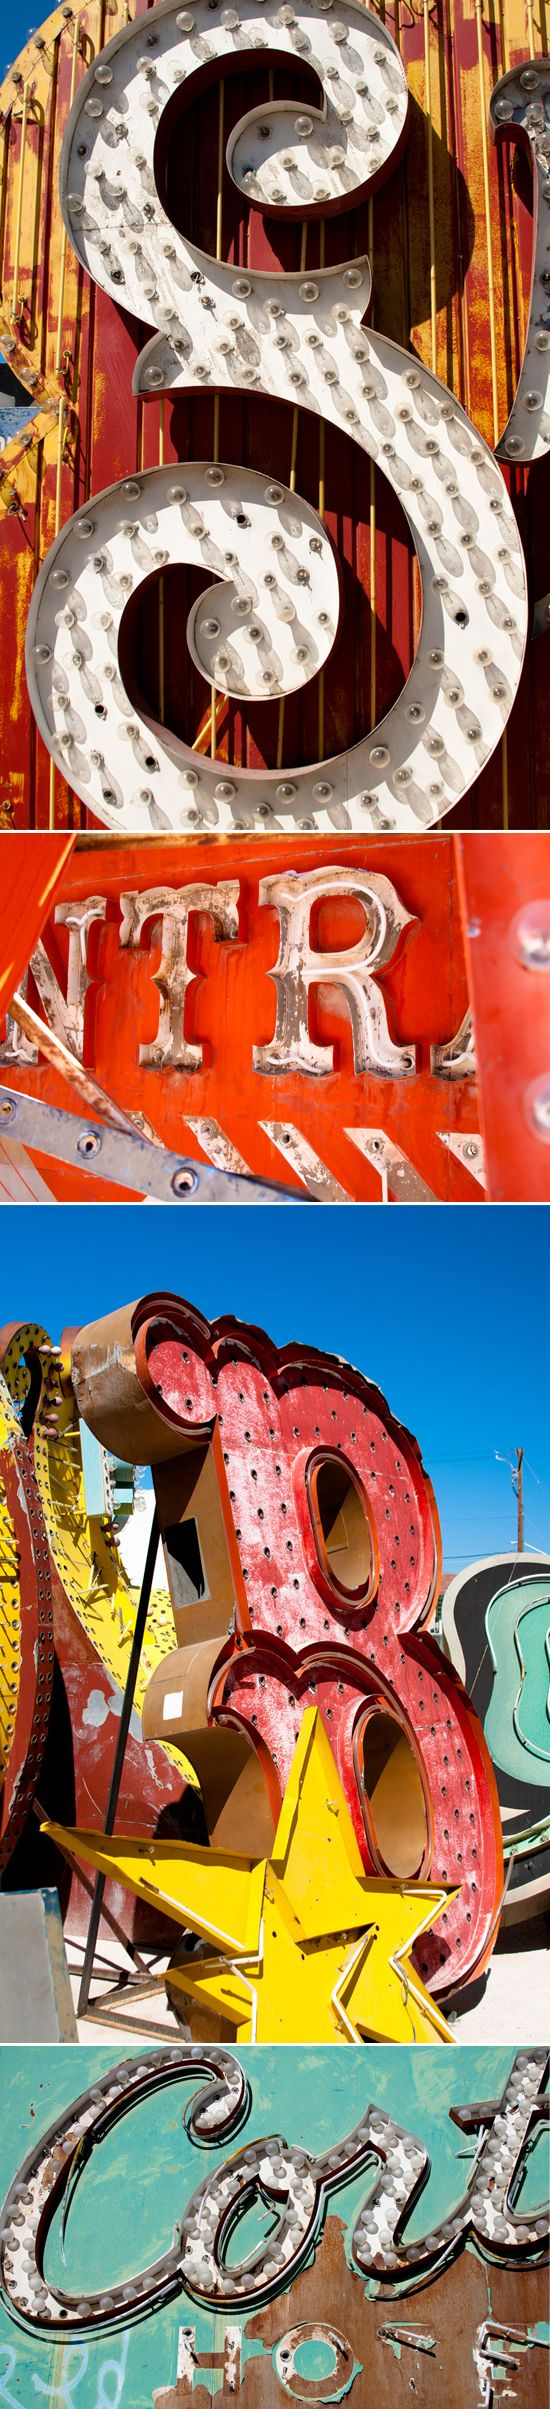 from Bri Emery's Design Love Fest post about the Neon Boneyard. What a magical place it must be